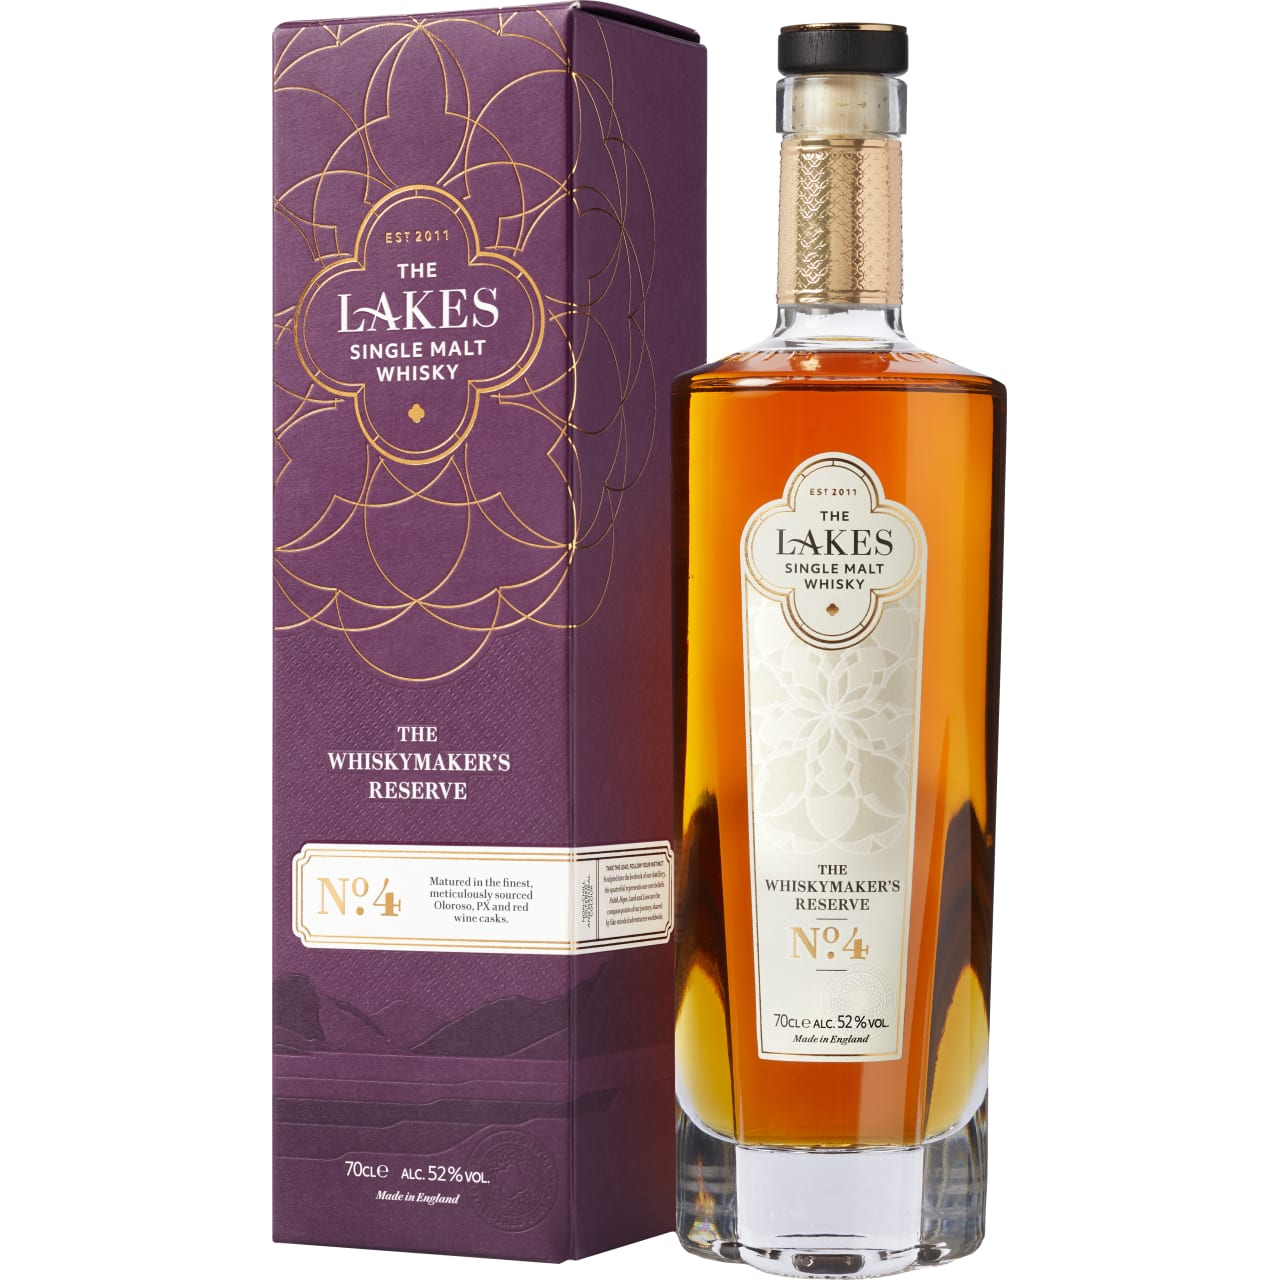 Product Image - The Lakes Single Malt Whiskymaker's Reserve No. 4